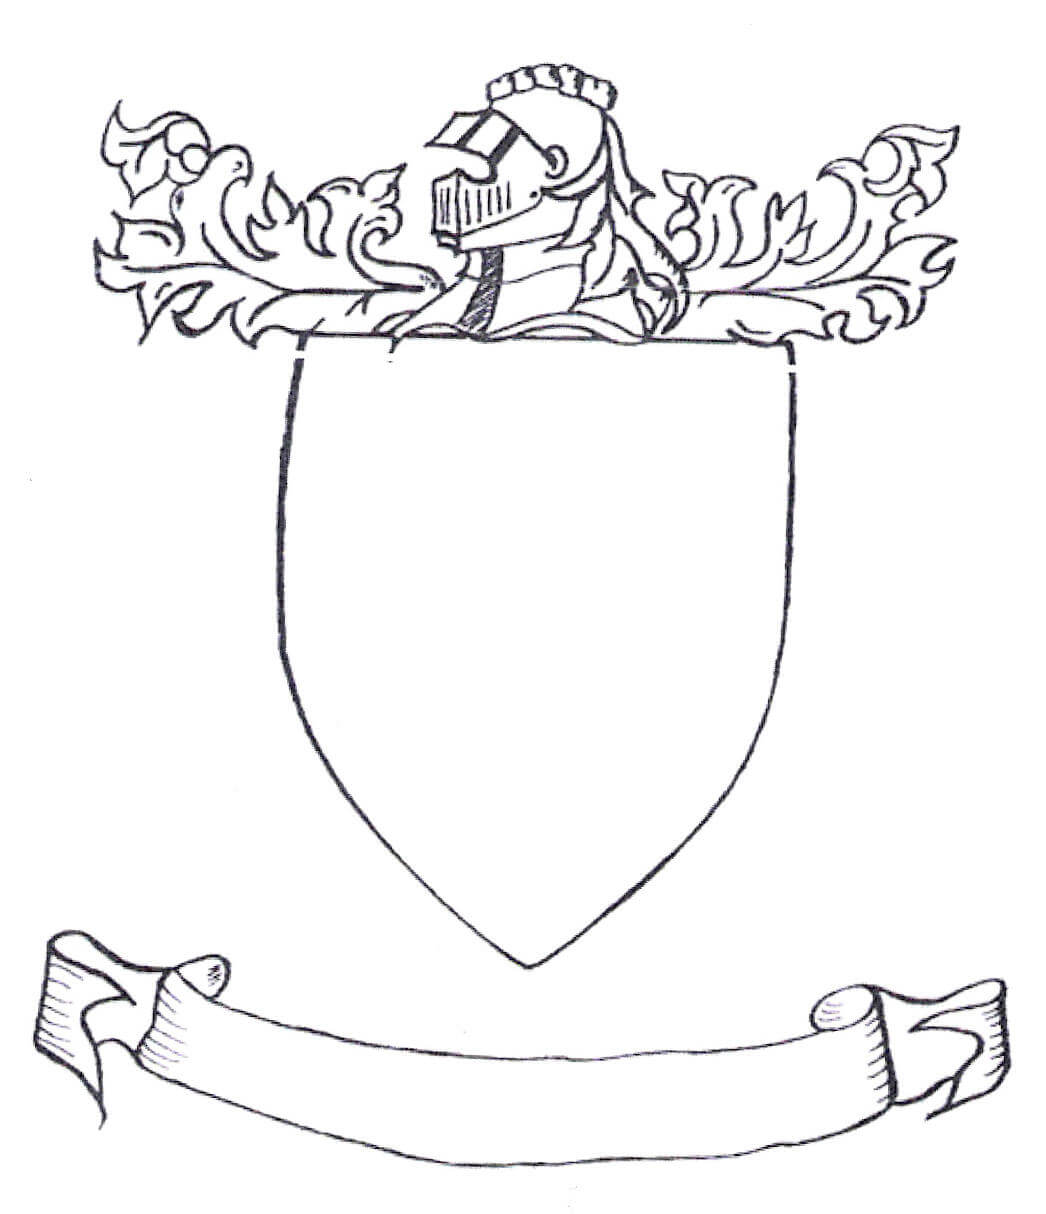 26 Images Of Medieval Shield Template Blank | Masorler With Regard To Blank Shield Template Printable